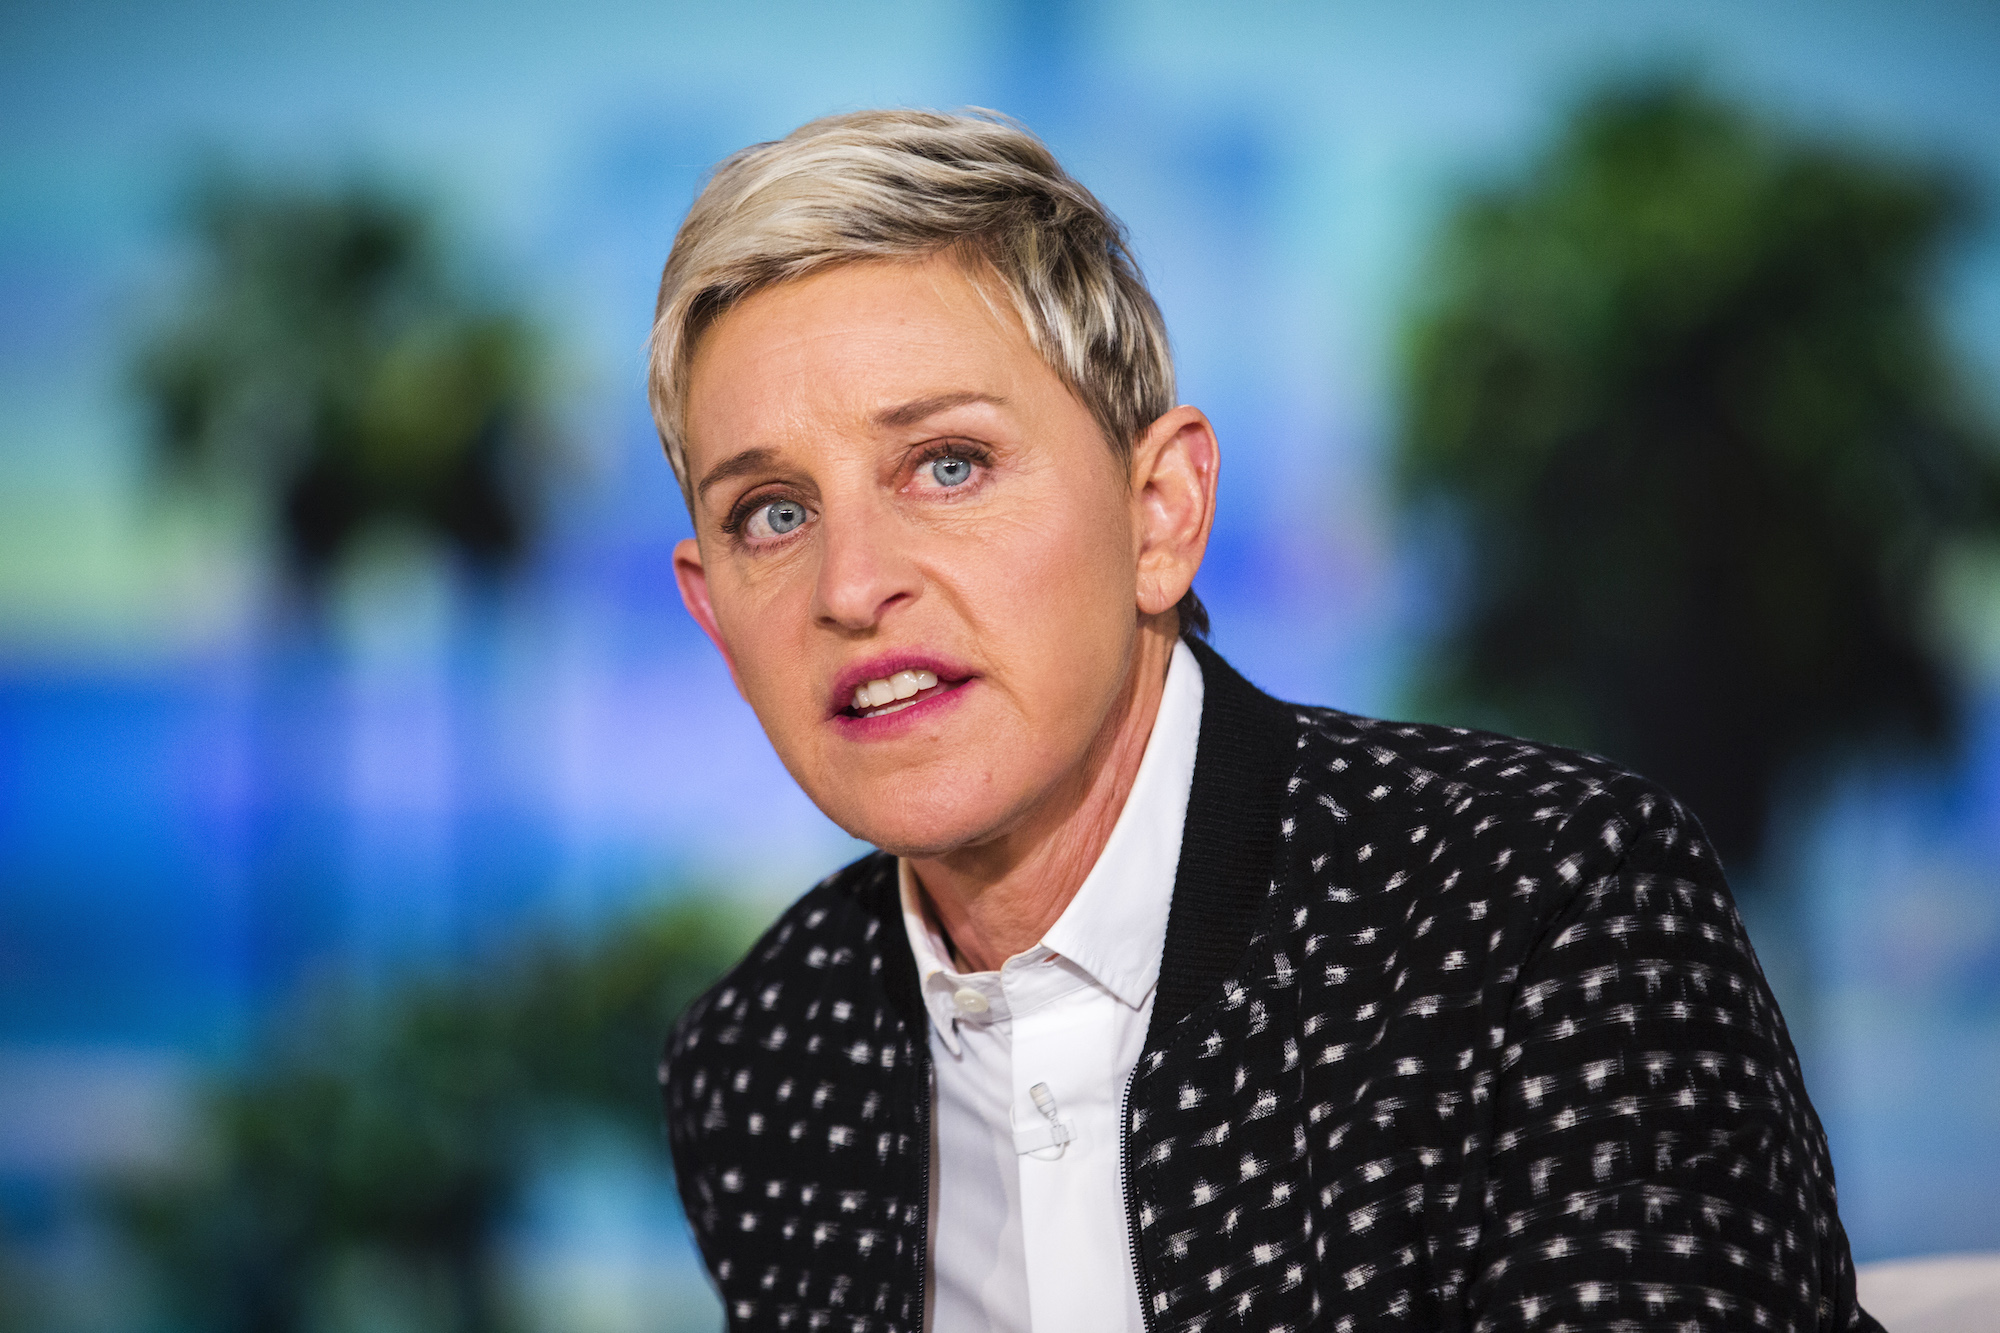 Ellen DeGeneres Tweet About Making Employee 'Cry Like A Baby' Resurfaces